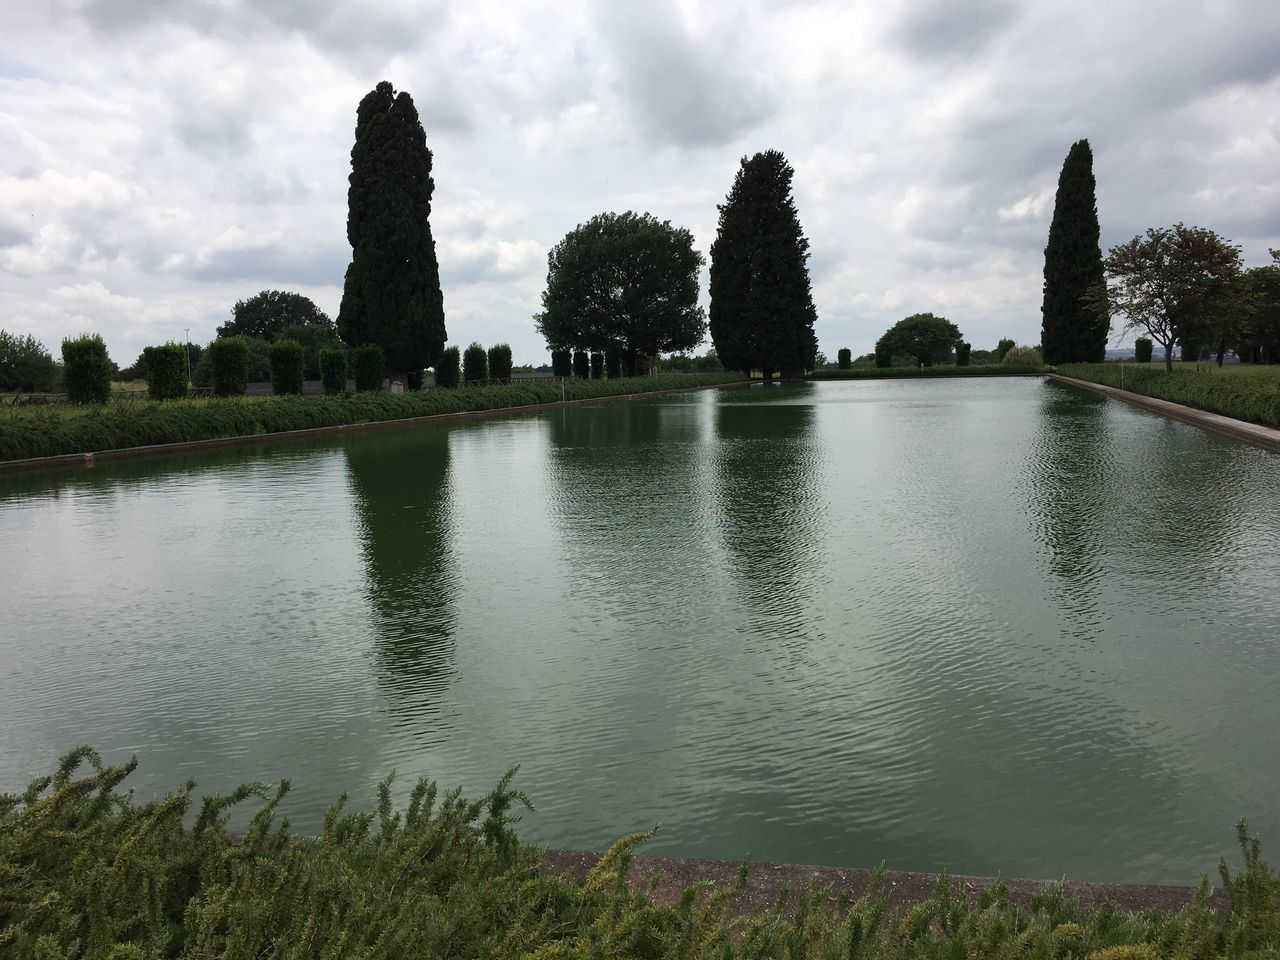 Reflection Sky Water Tree Cloud - Sky Nature No People Outdoors Lake Day Beauty In Nature Cultures Trees And Sky Trees Treescape Landscape Villa Adriana